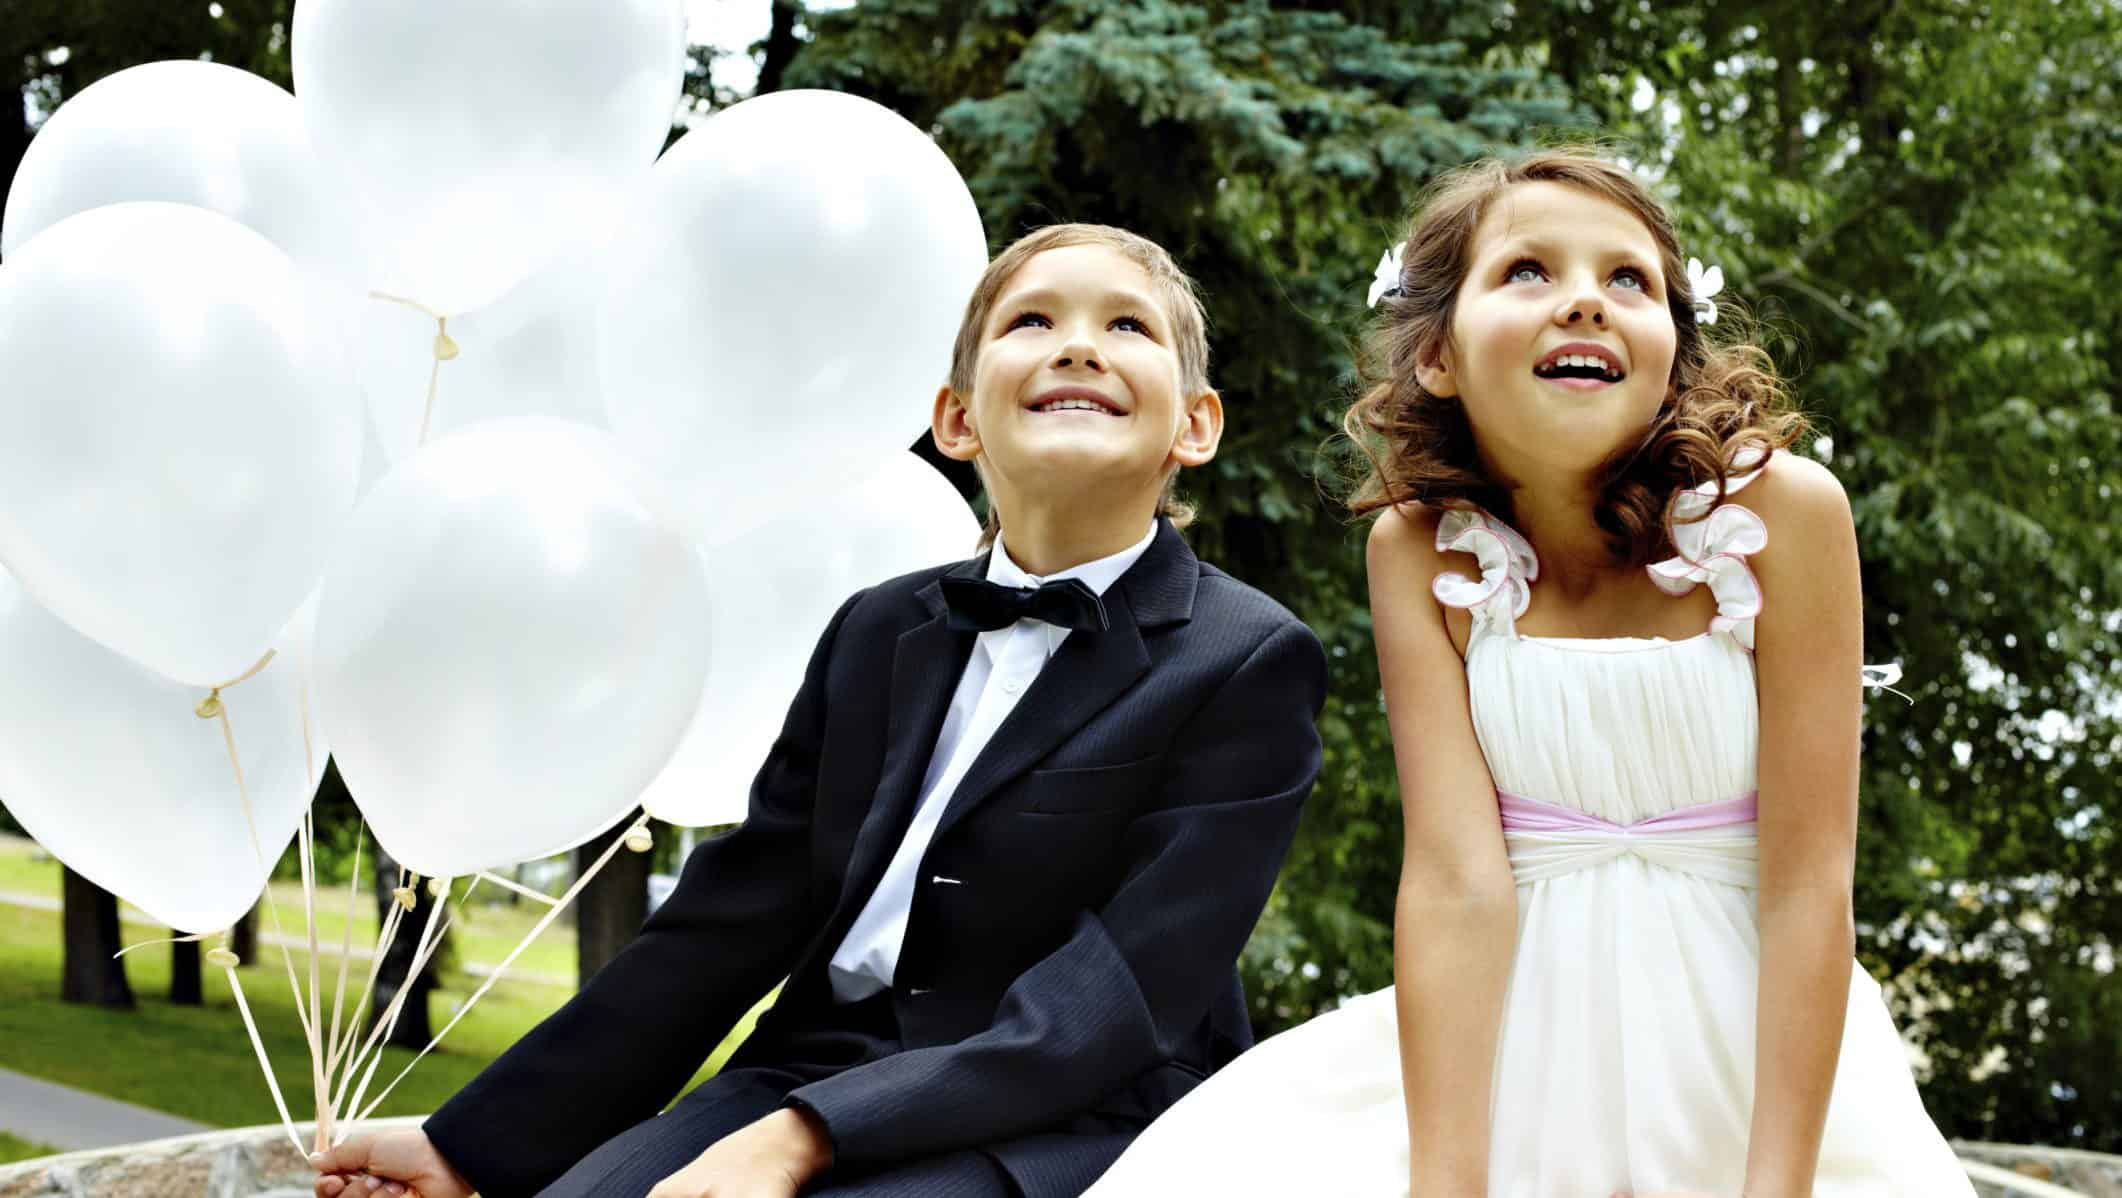 flower girl and page boy with balloons